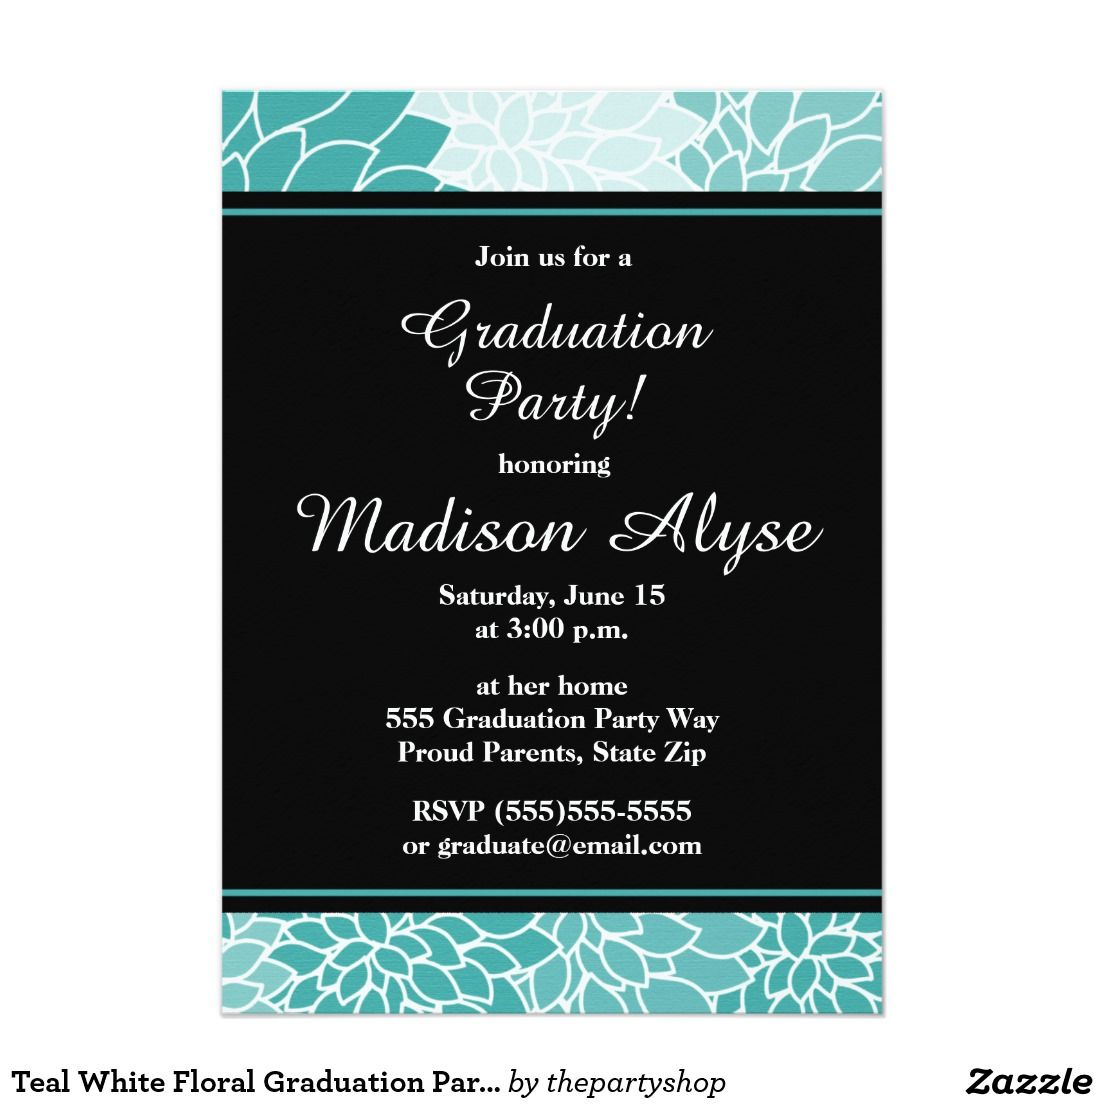 Teal white floral graduation party invitation party invitations teal white floral graduation party invitation filmwisefo Gallery